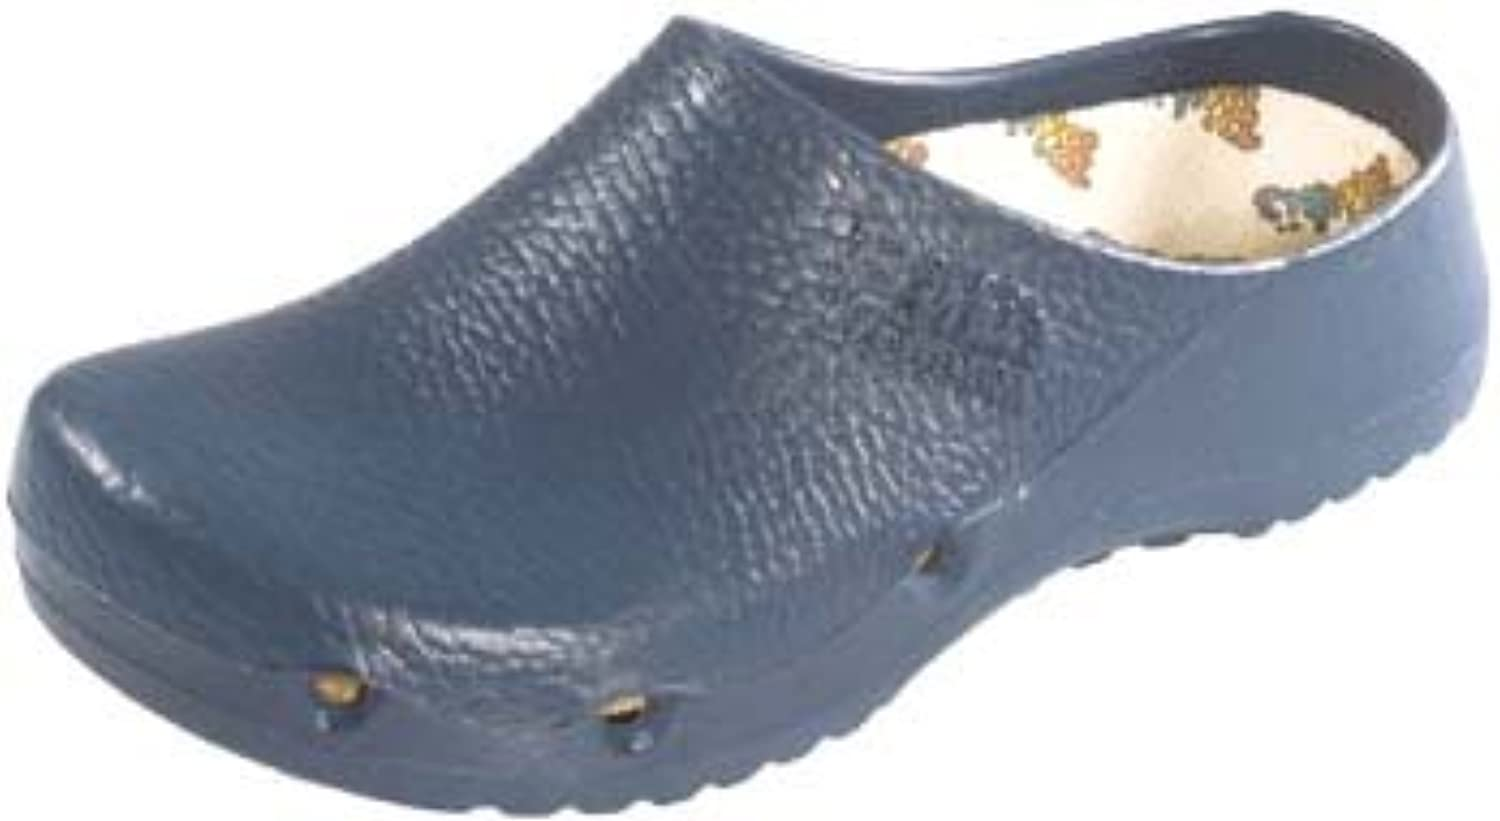 BIRKENSTOCK Unisex Birki Air Antistatic Normal Clogs